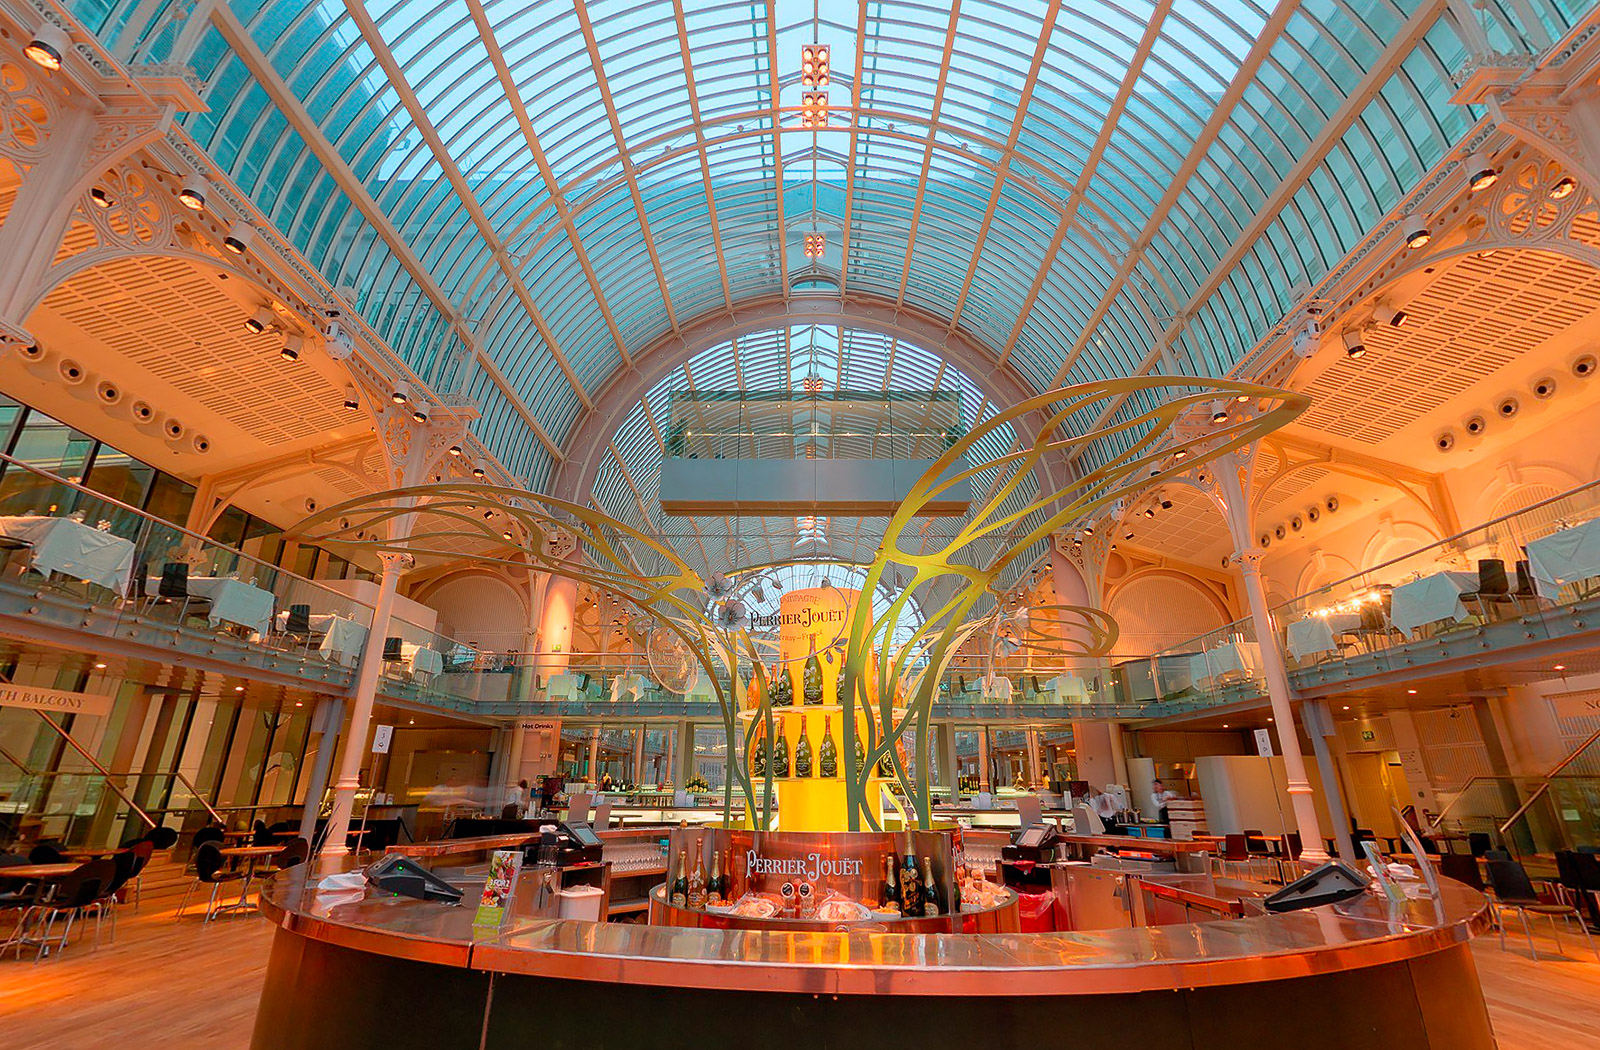 The Royal Opera House 360 Photography